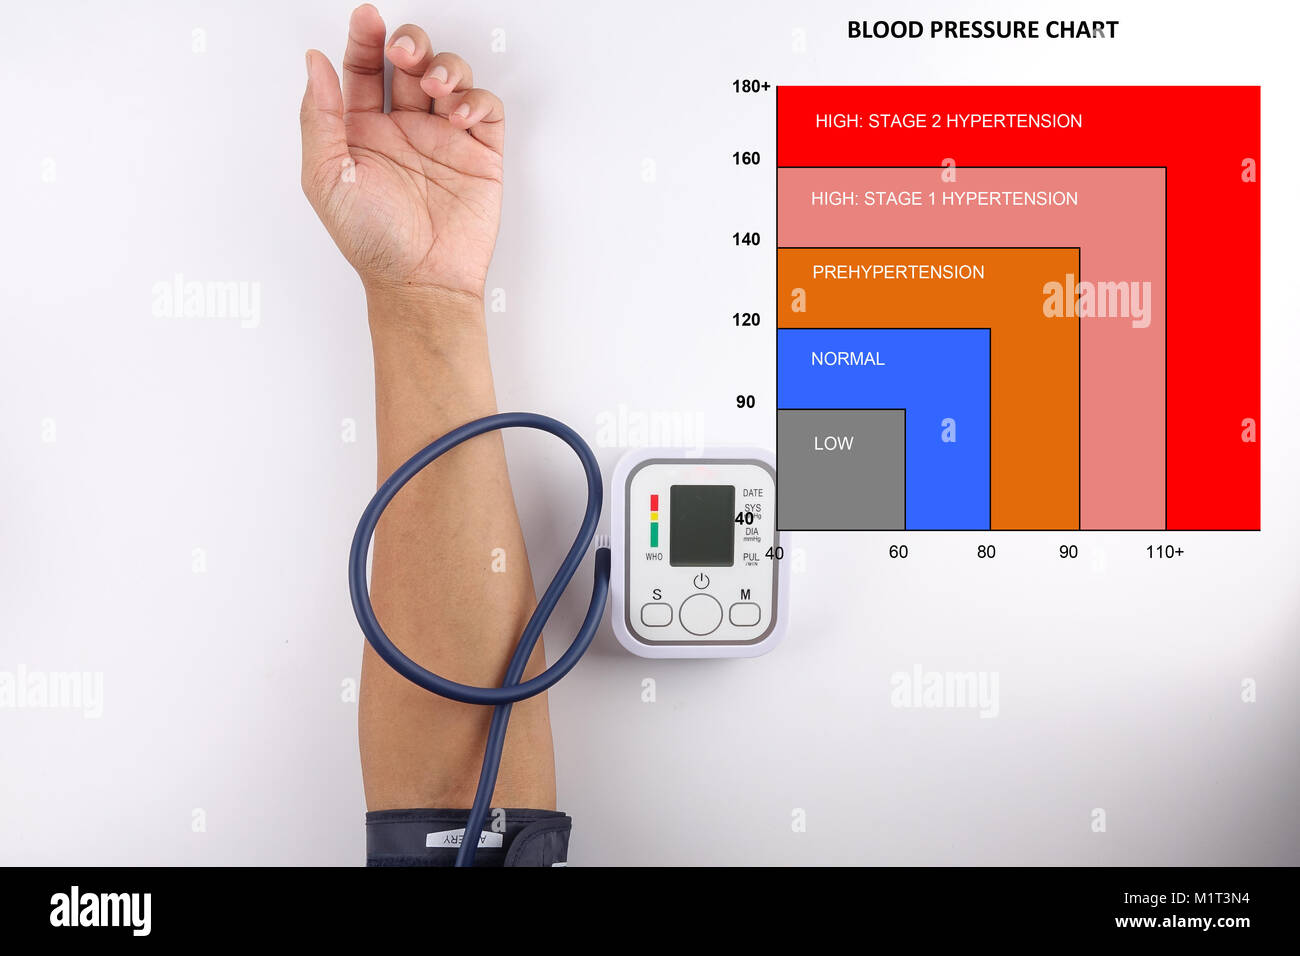 Blood Pressure Chart Stock Photos Blood Pressure Chart Stock